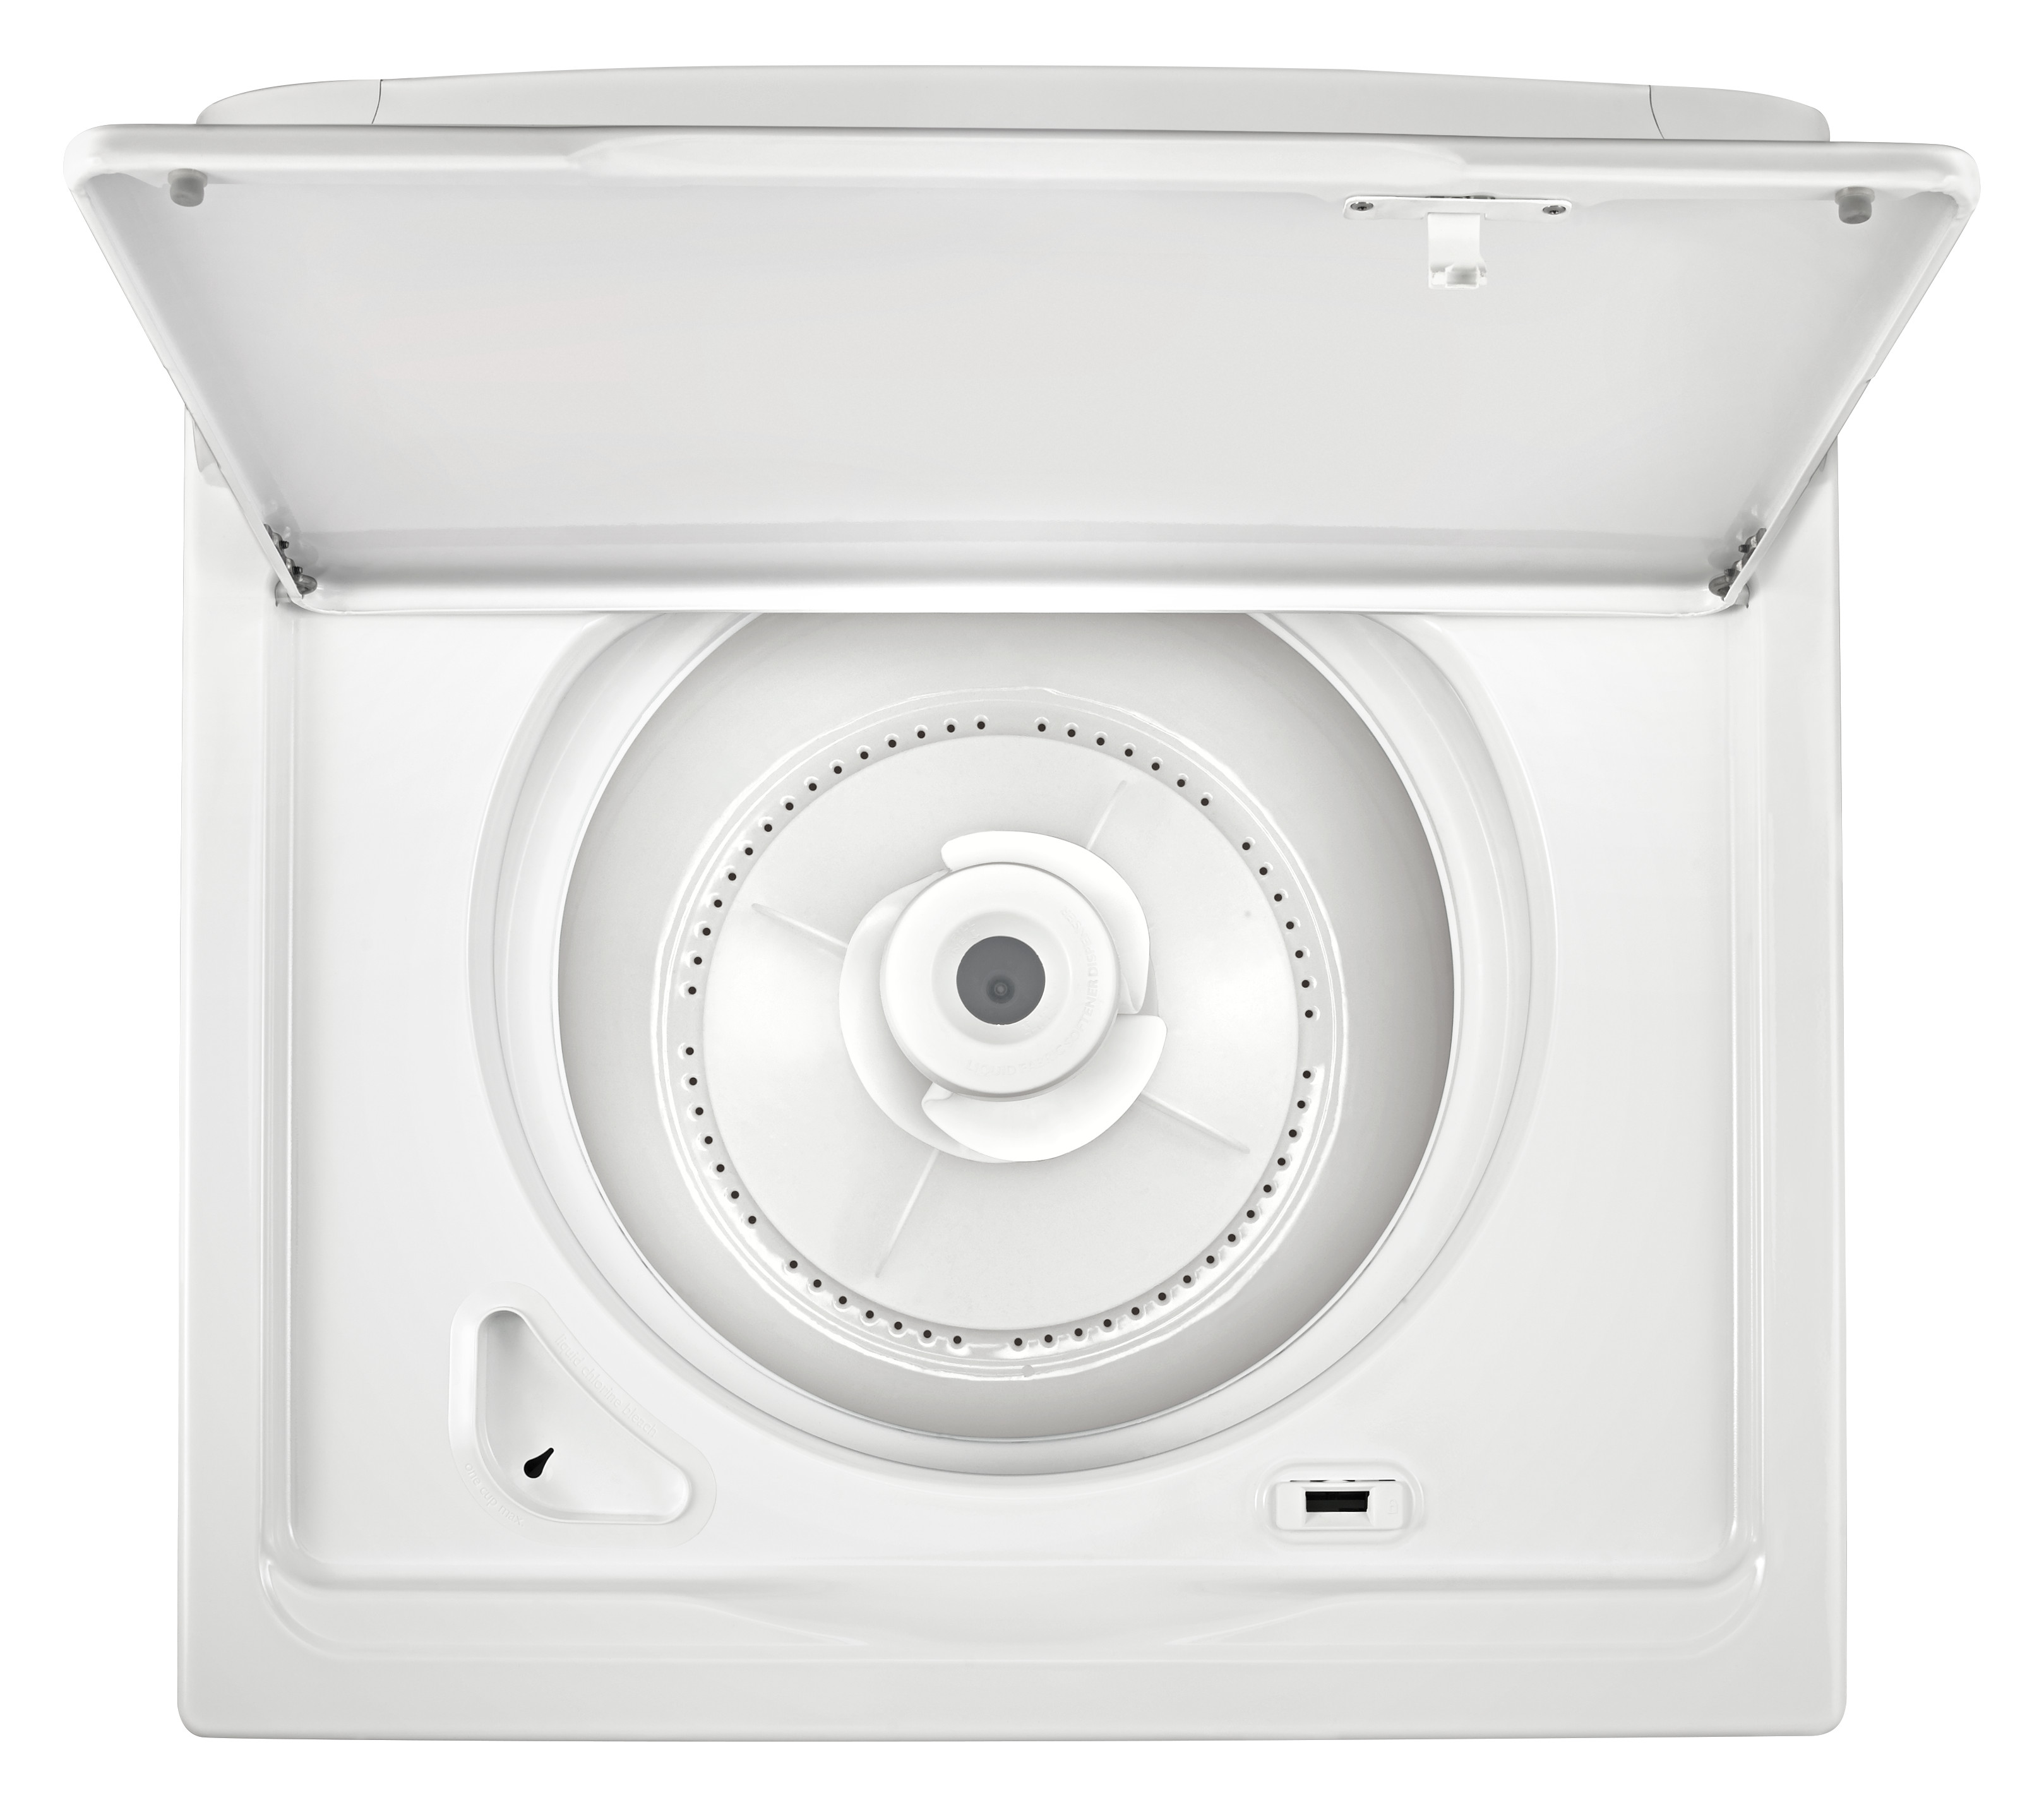 Whirlpool WTW4816FW 3.5 cu. ft. Top Load Washer w/ Deep Water Wash Option - White